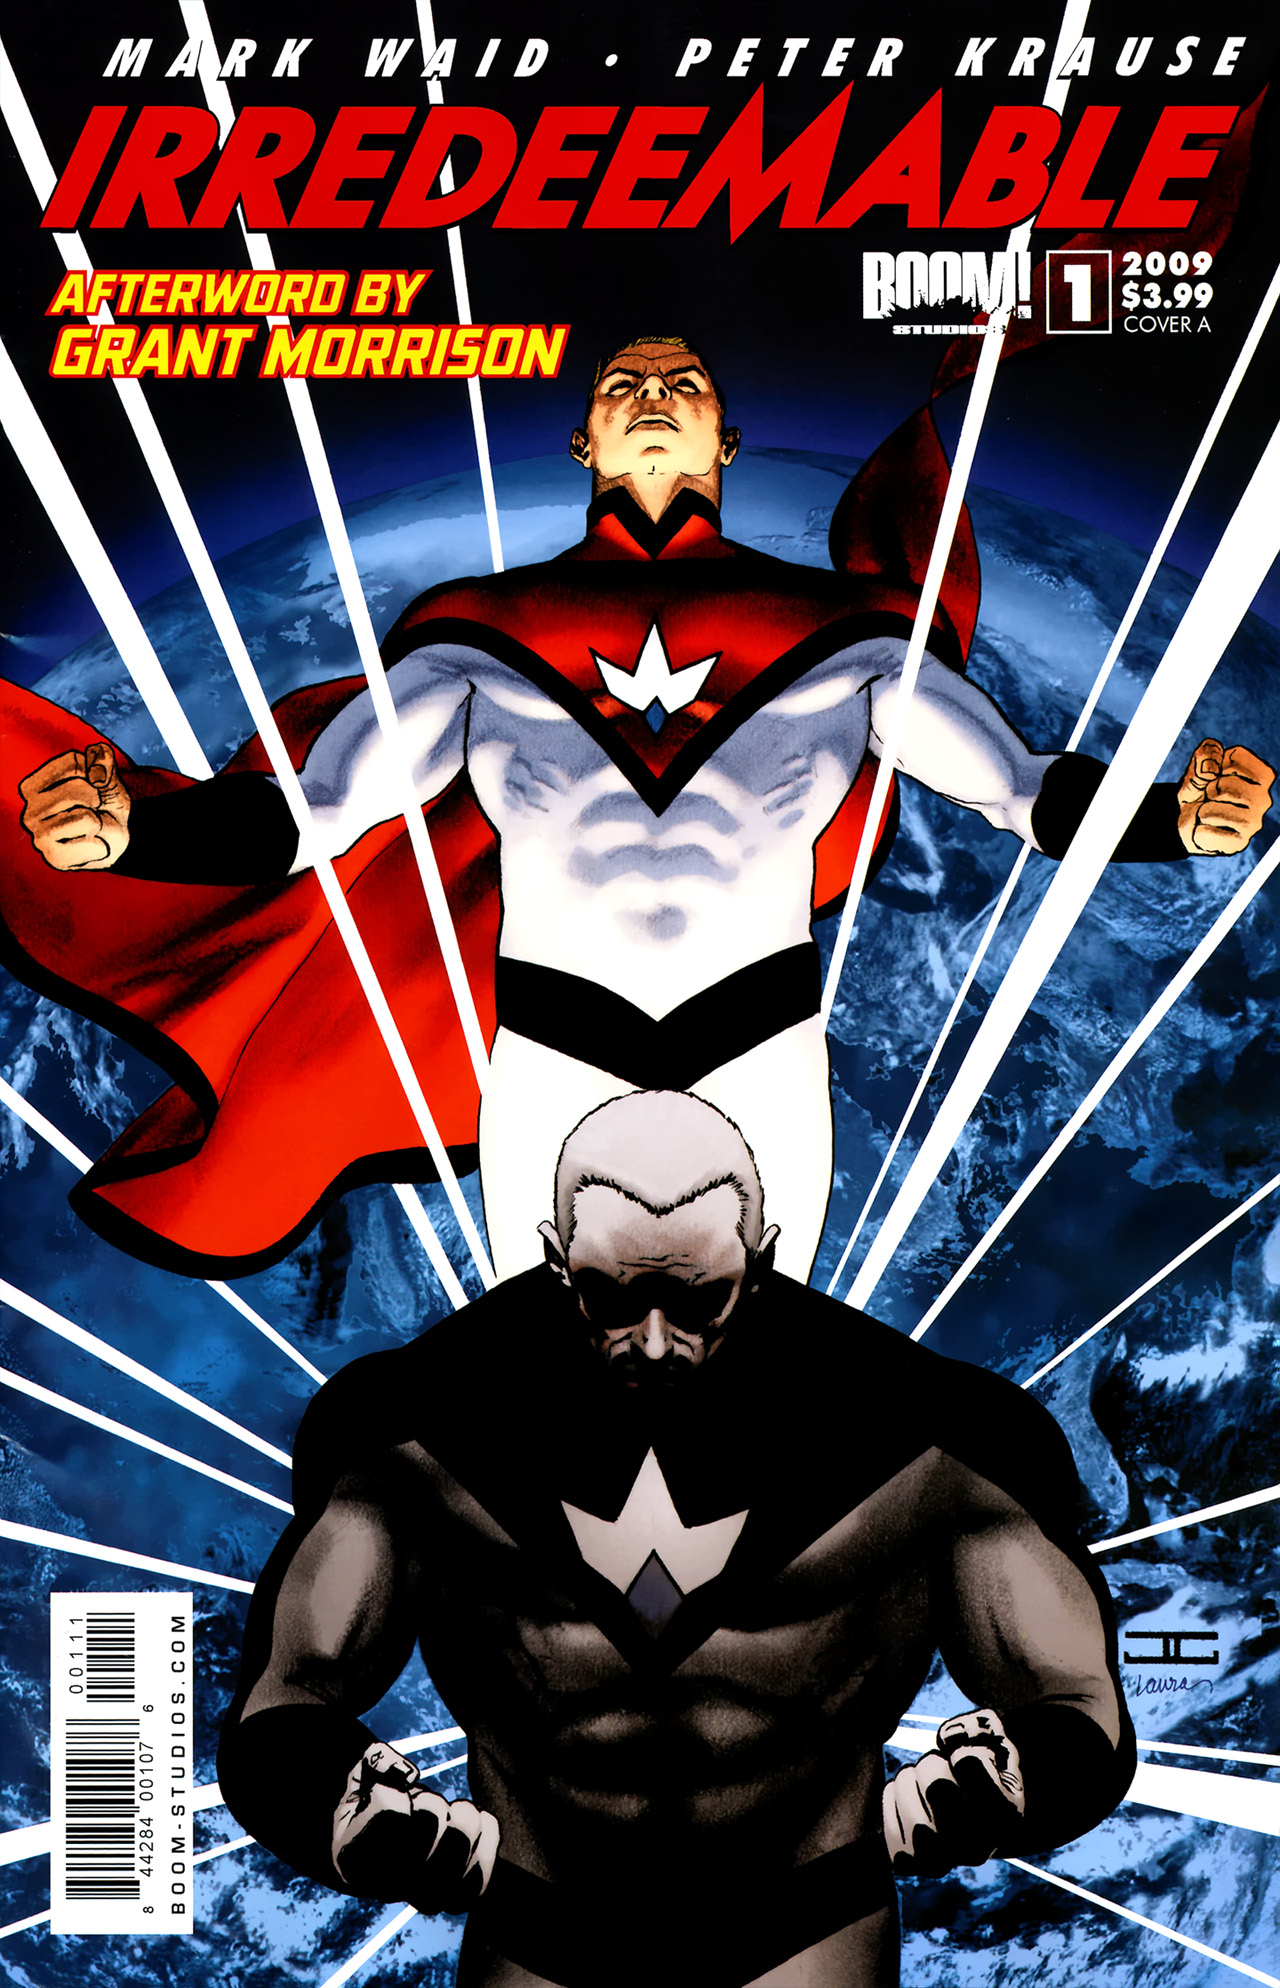 Irredeemable 1 cover